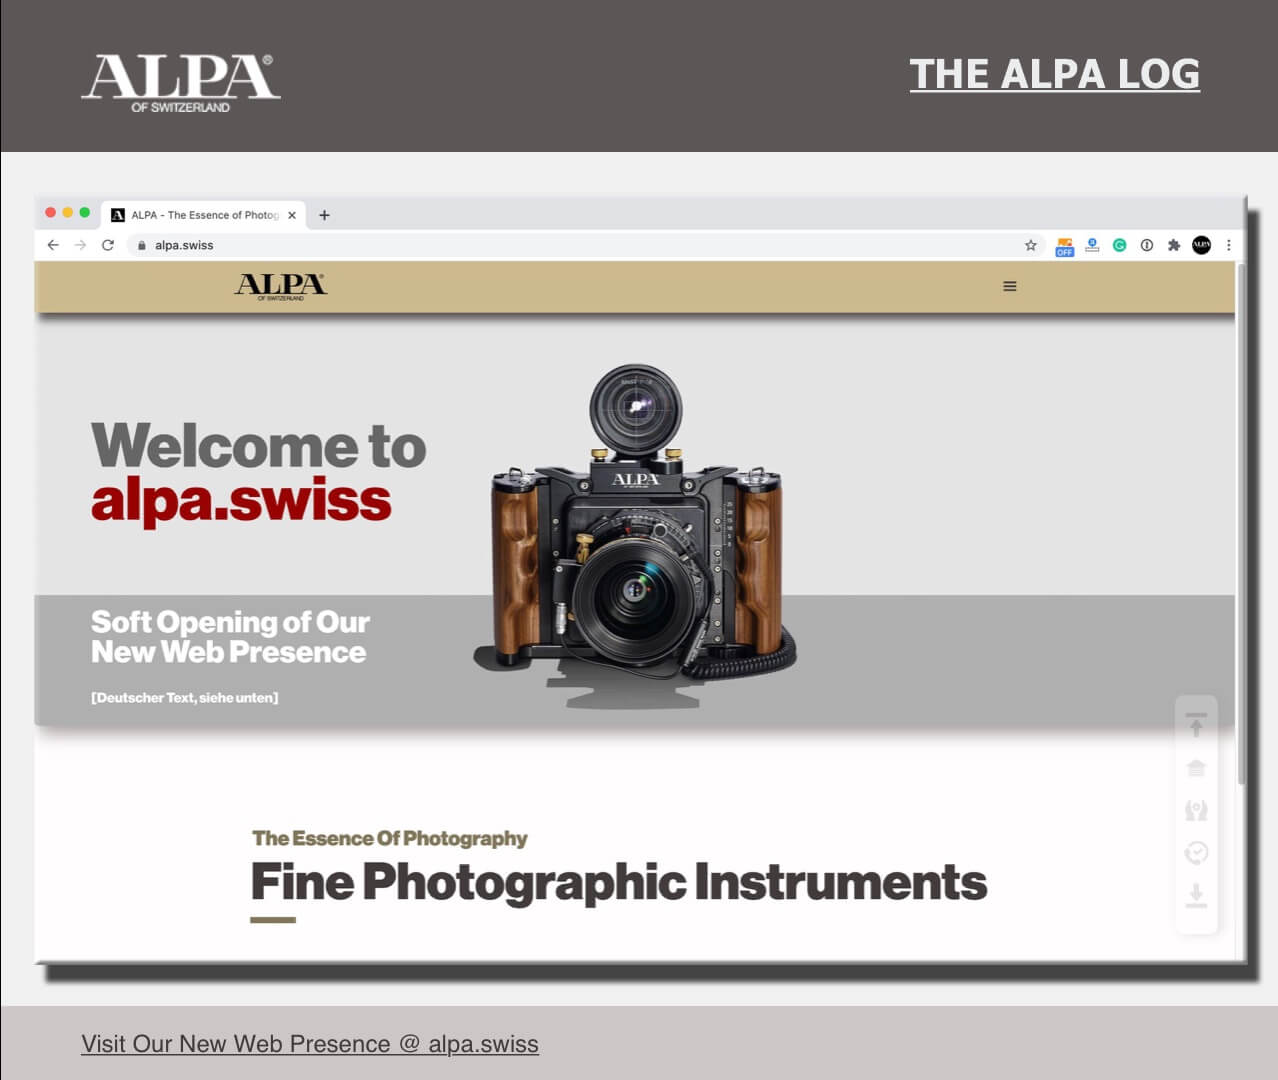 [The ALPA Log] Welcome to alpa.swiss - Willkommen bei alpa.swiss